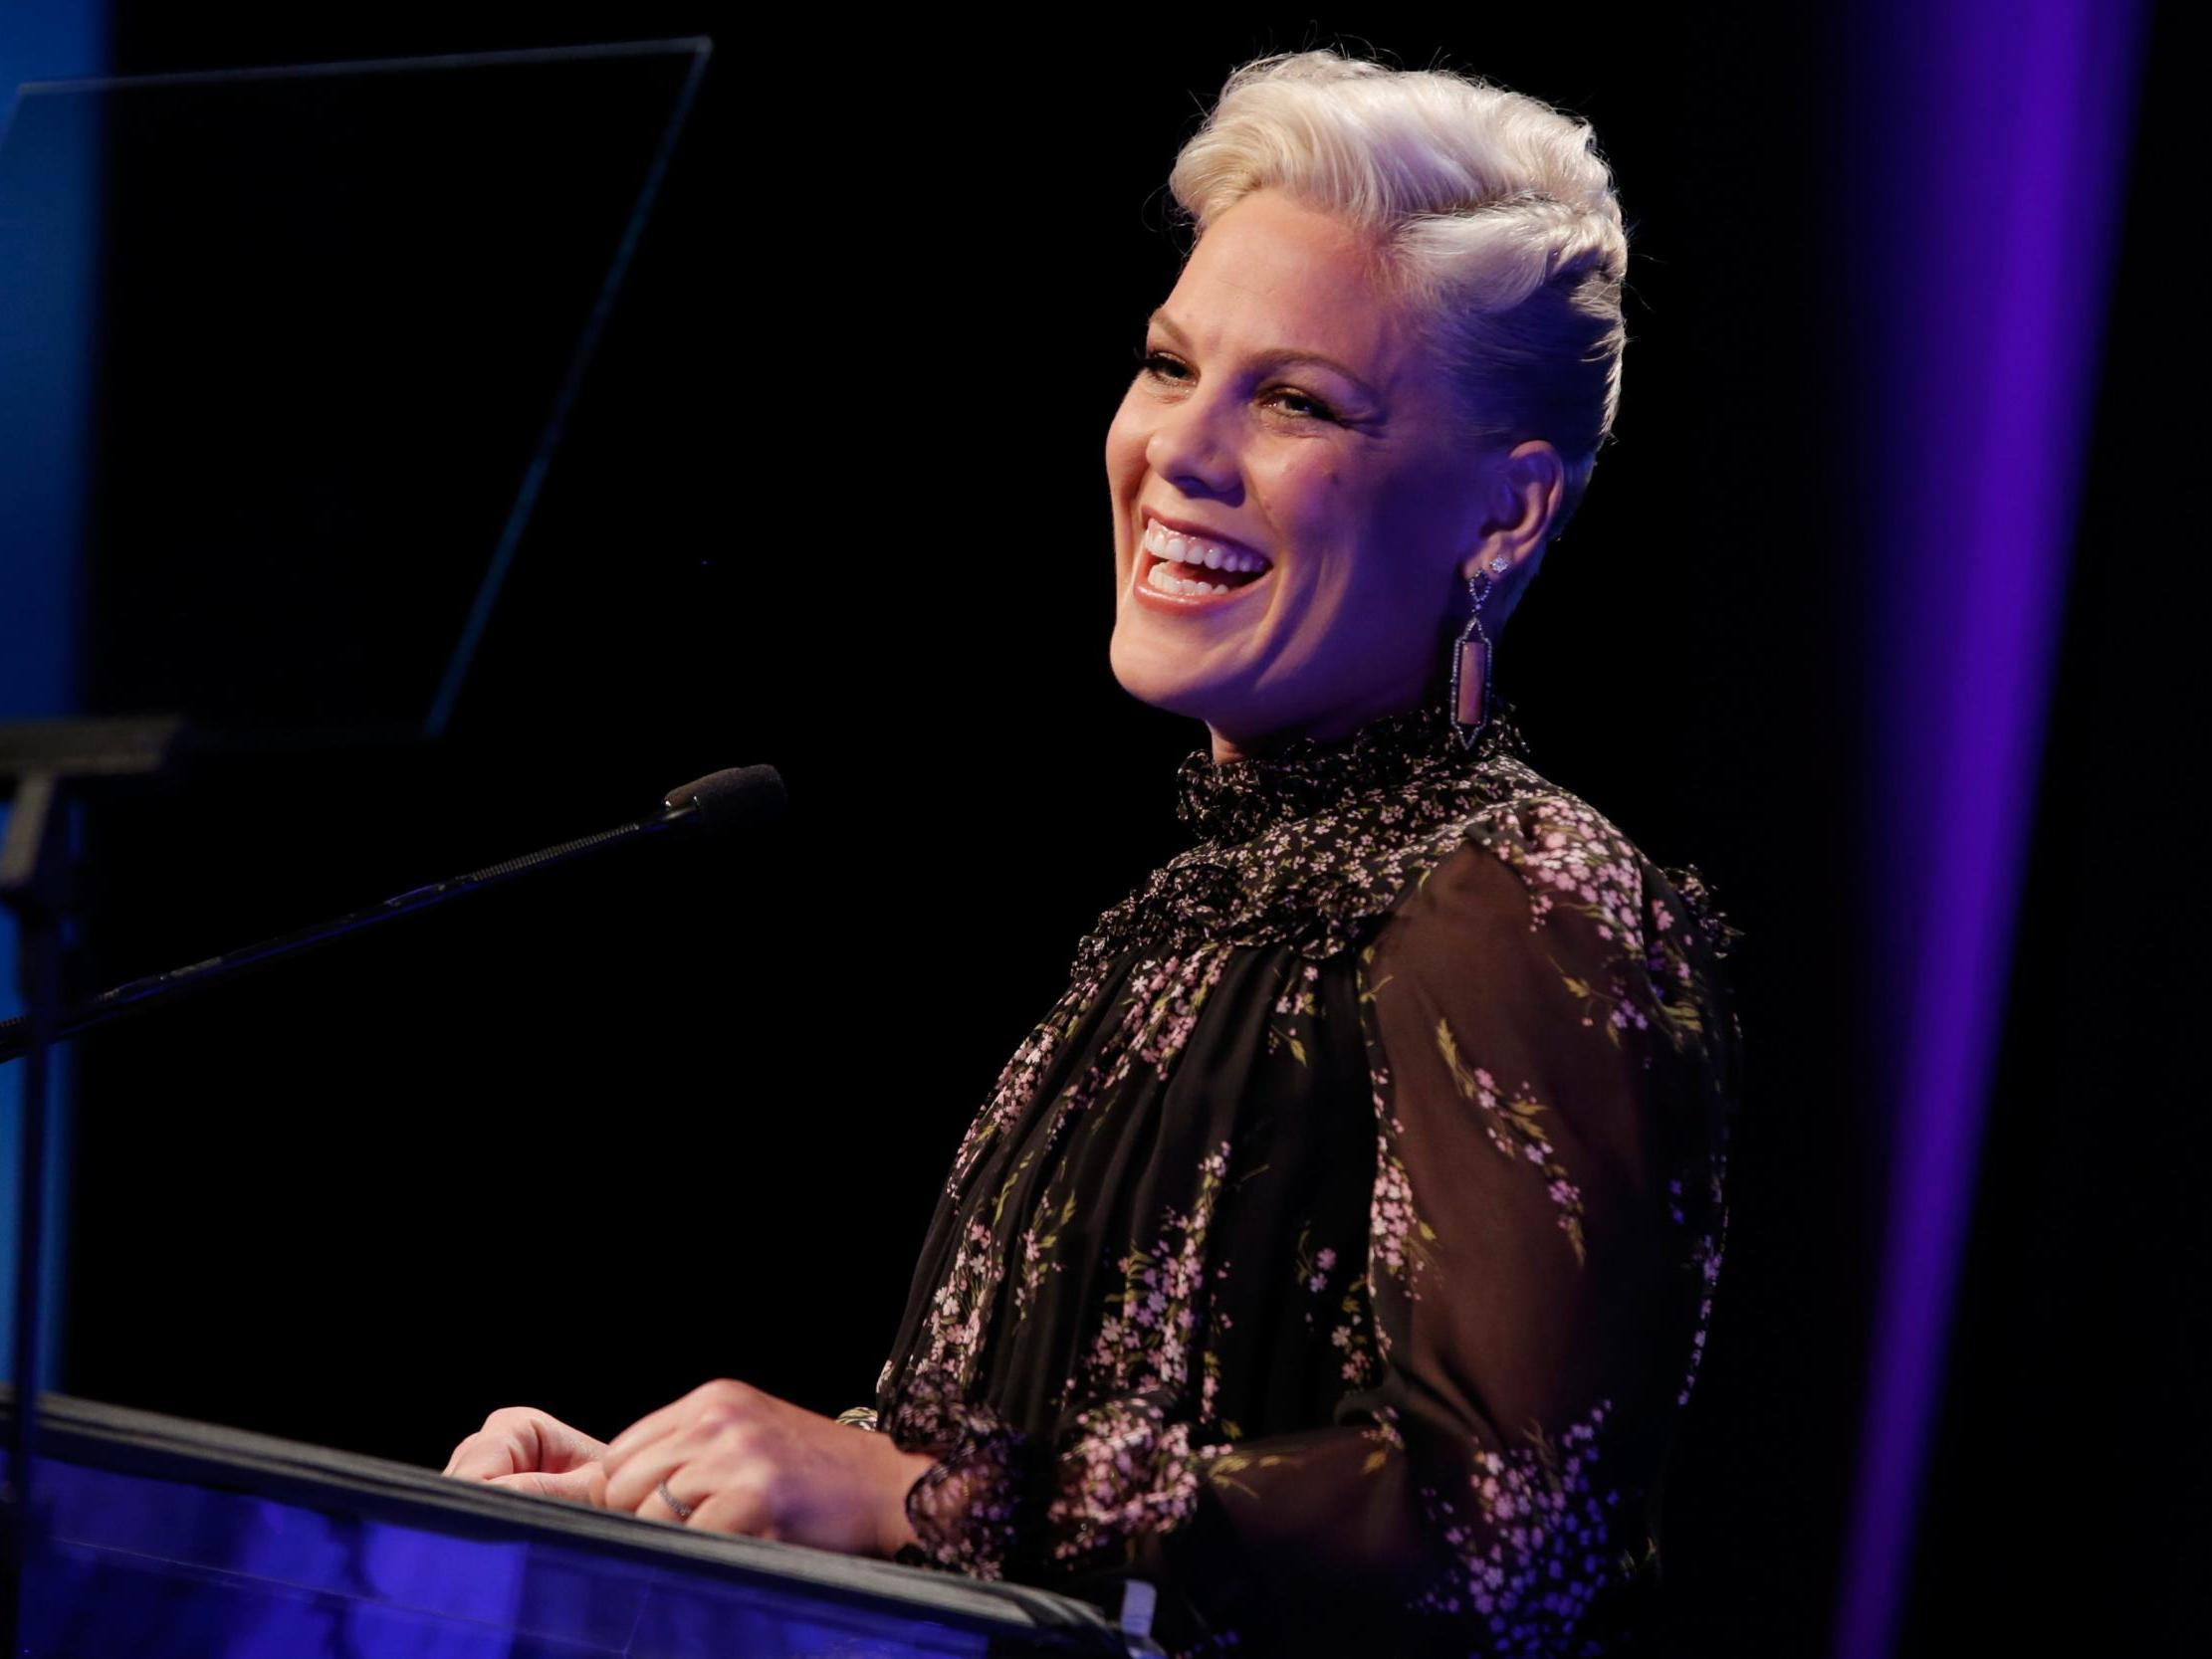 Pink fan names baby after pop star after giving birth during Liverpool concert